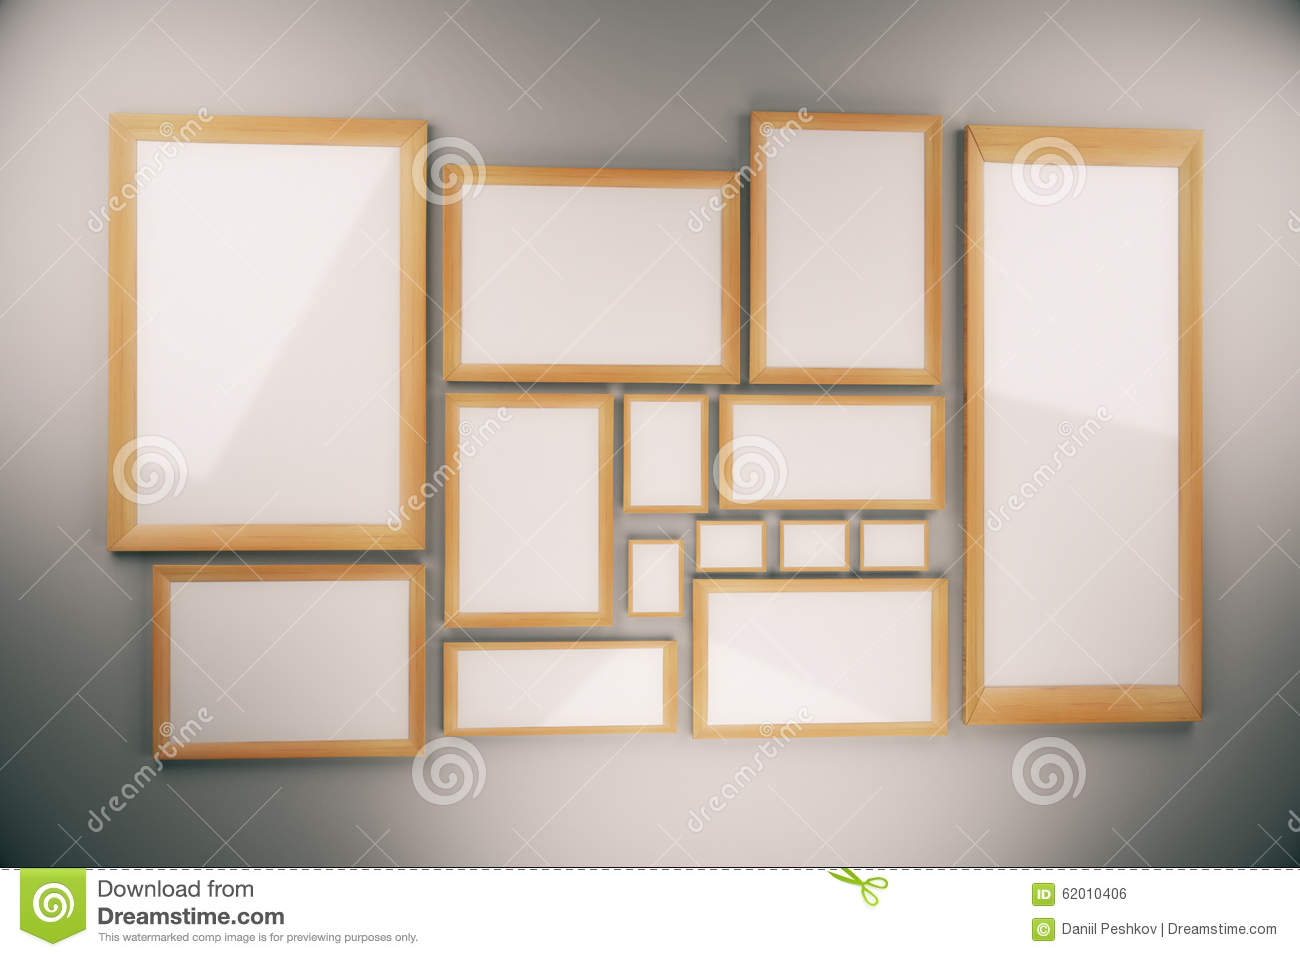 Blank picture frames composition on the wall stock - Composicion marcos pared ...